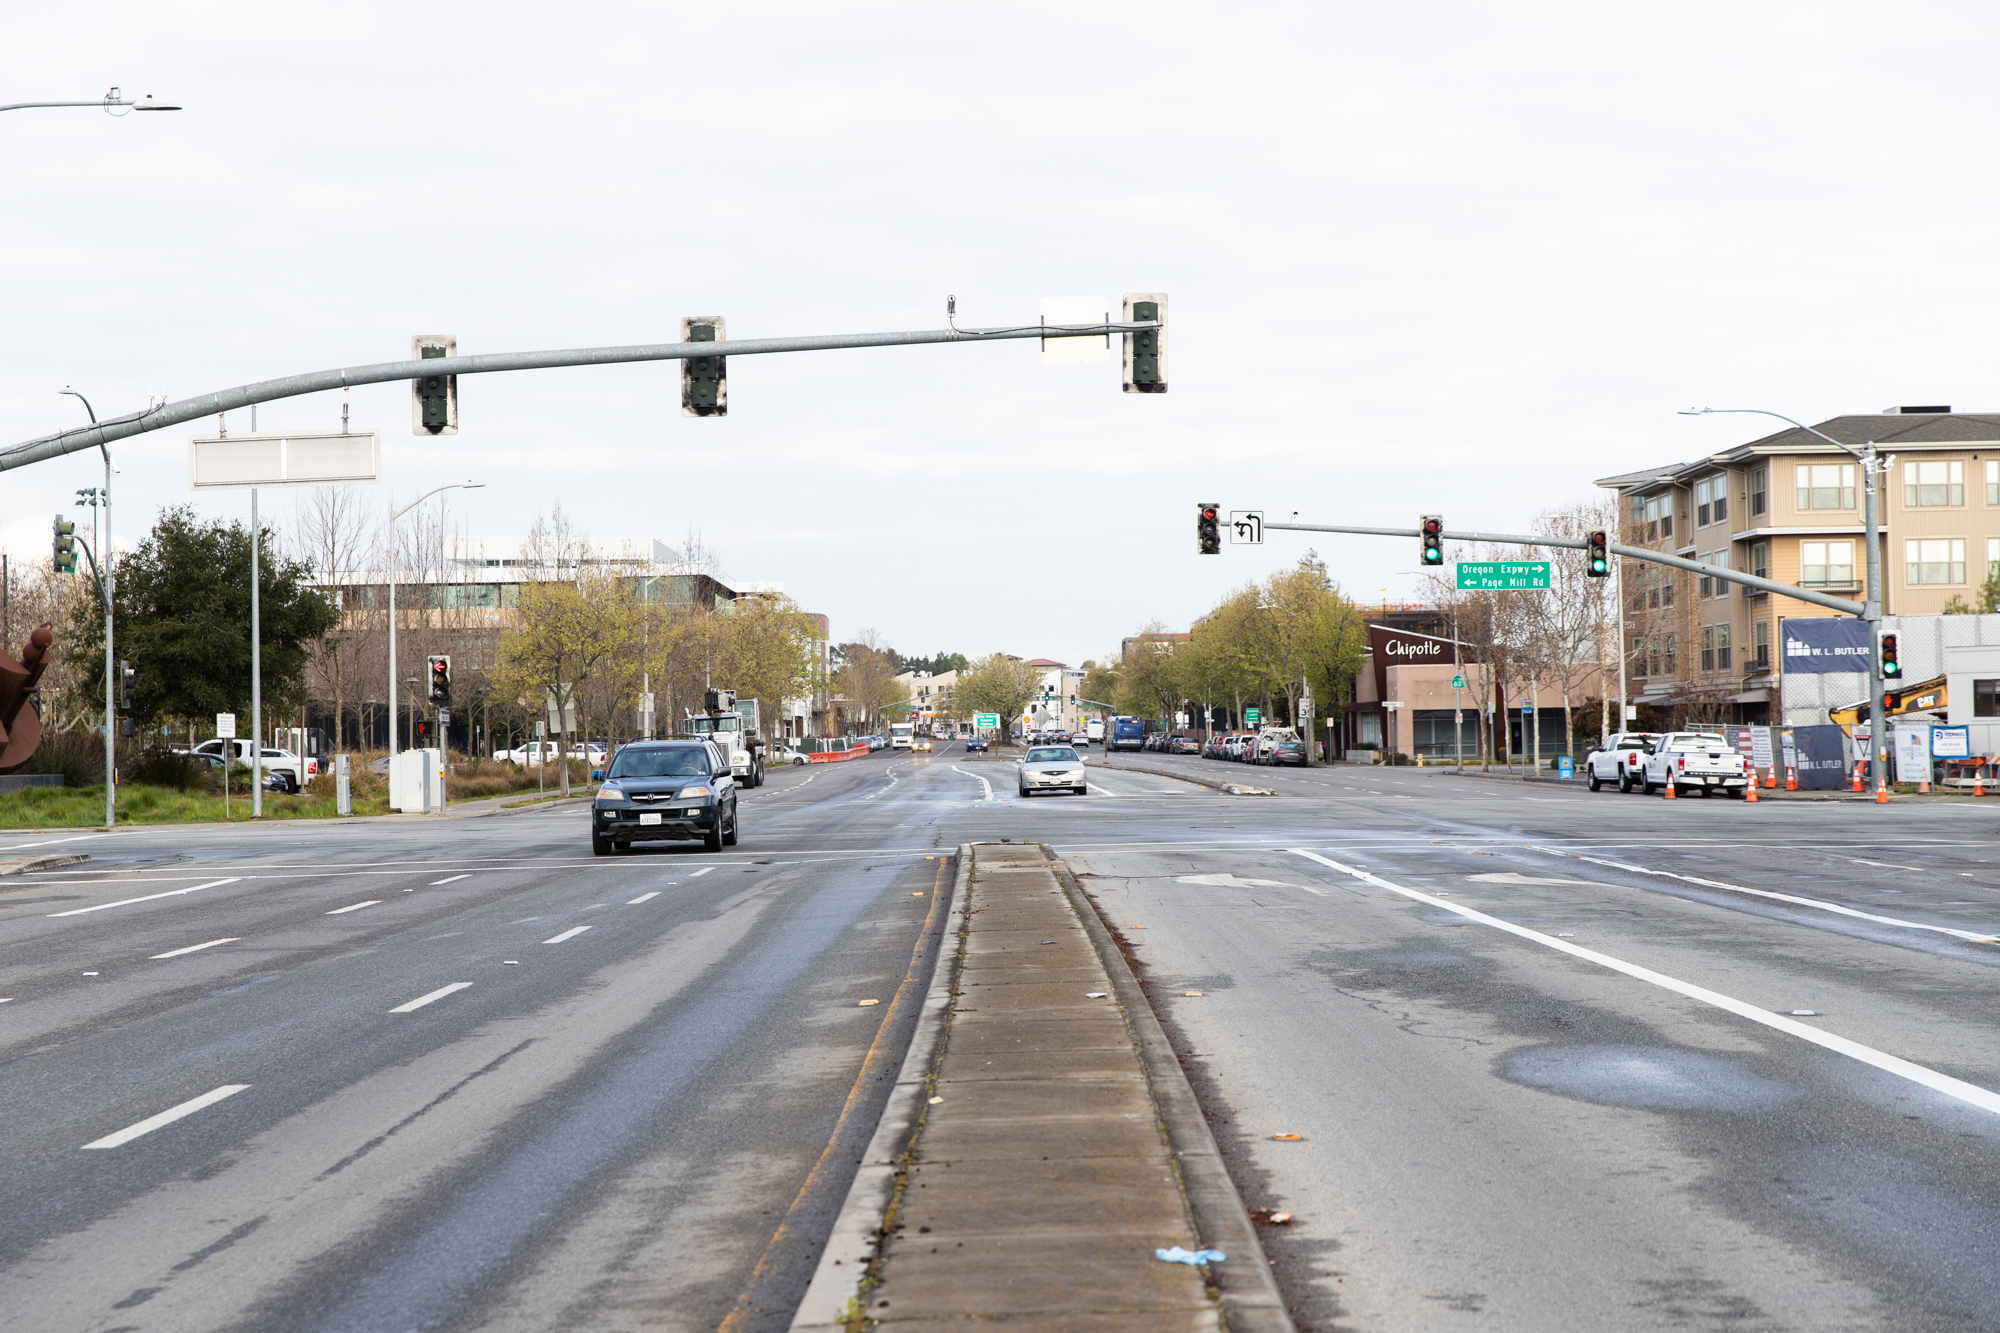 Rush hour at the intersection of El Camino Real and Page Mill Road in Palo Alto is normally packed with traffic. Photo by Magali Gauthier.